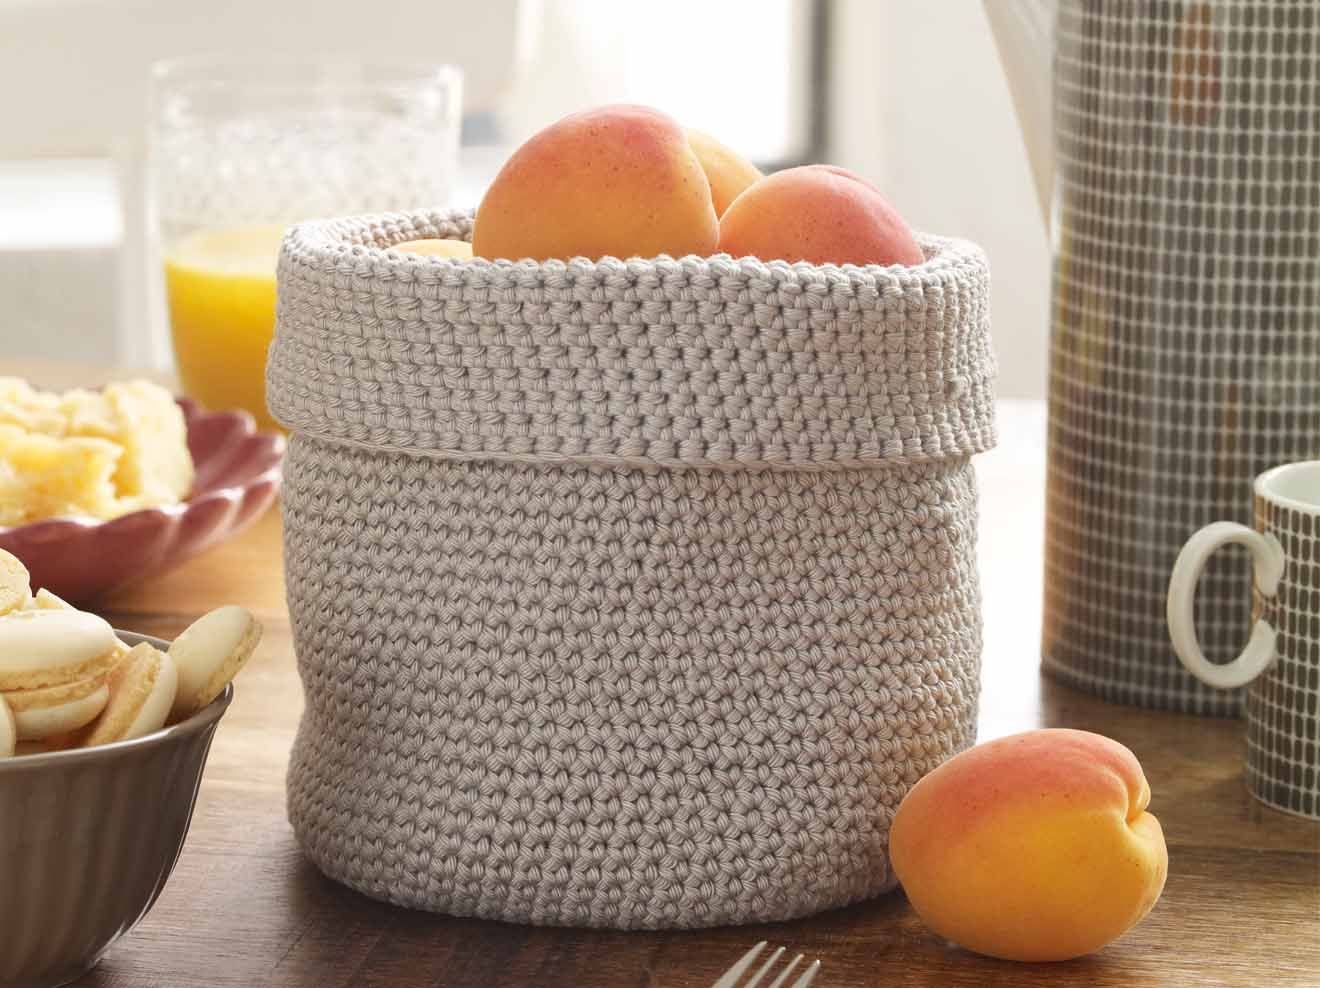 Photo of Crochet pattern: How to crochet your own fruit basket Wonder woman